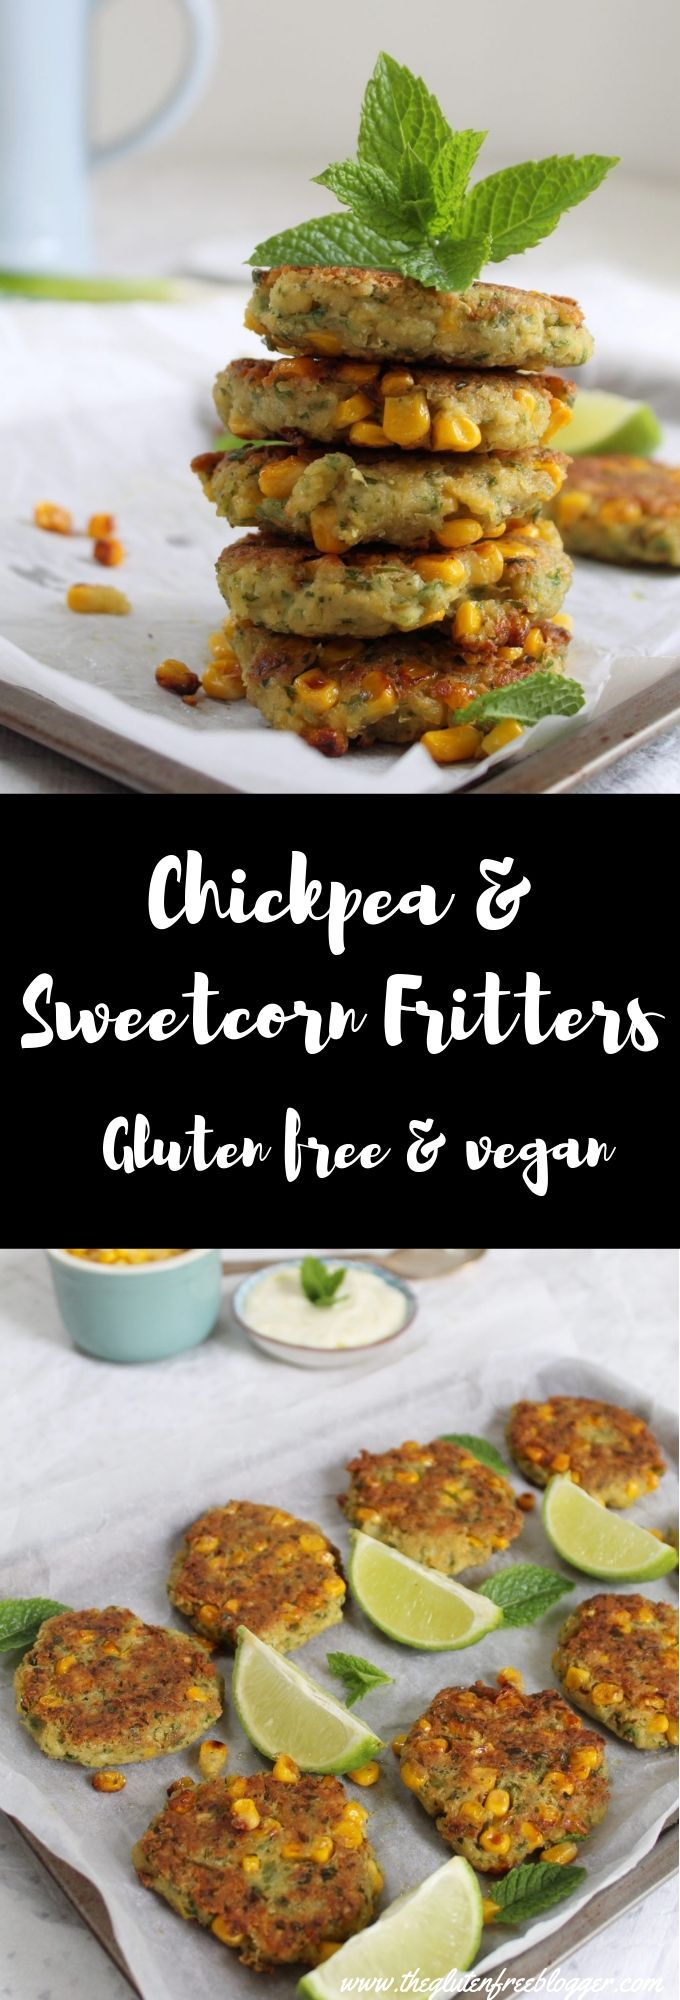 Chickpea and Sweetcorn Fritters recipe - The Gluten Free Blogger